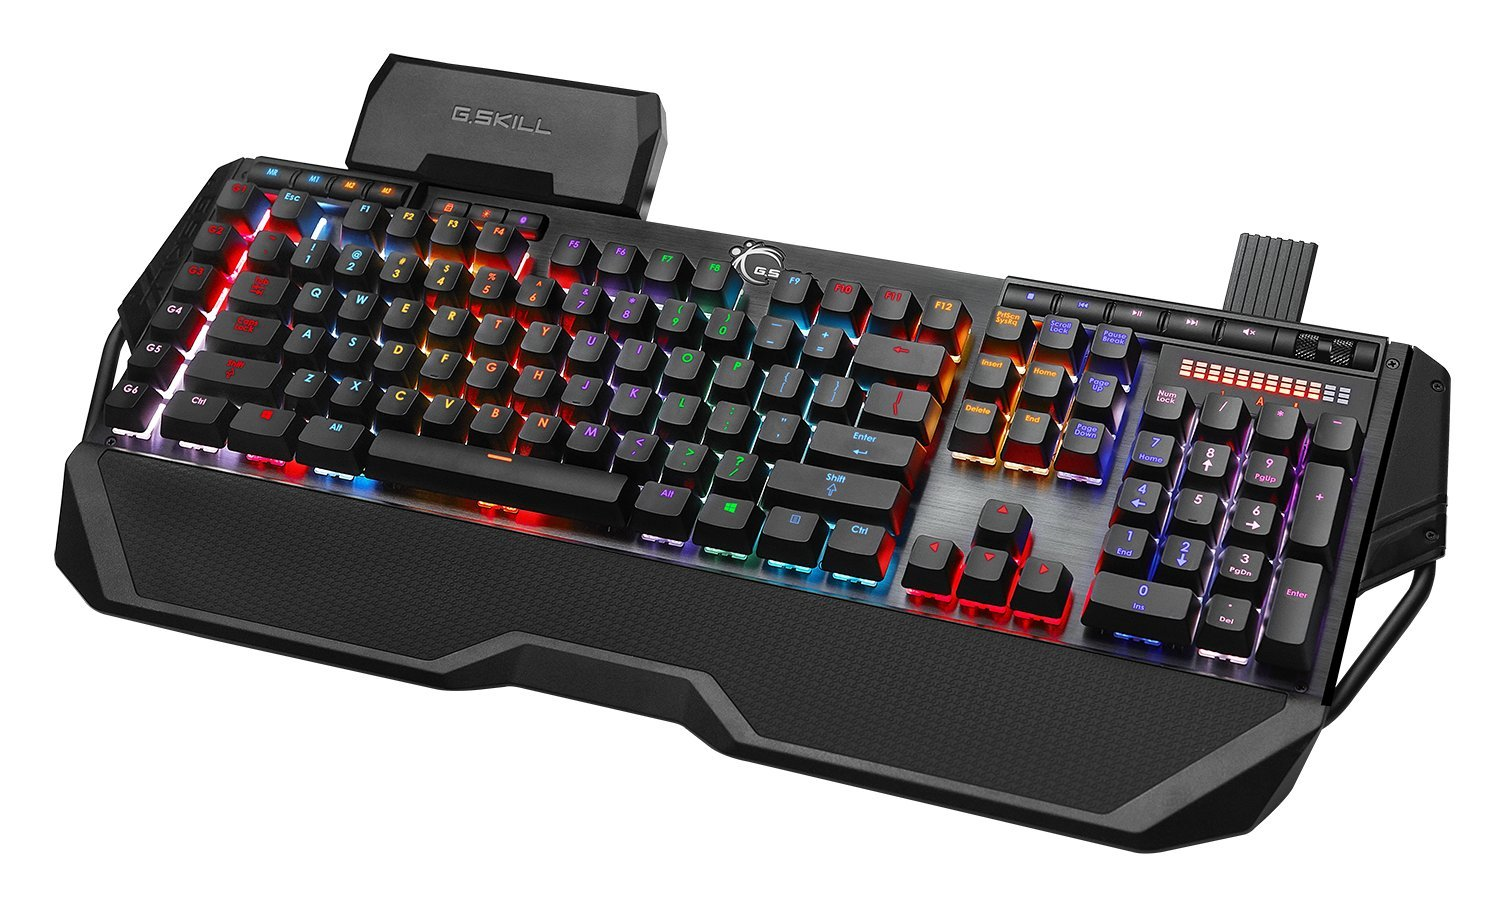 RIPJAWS KM780 RGB Mechanical Keyboard